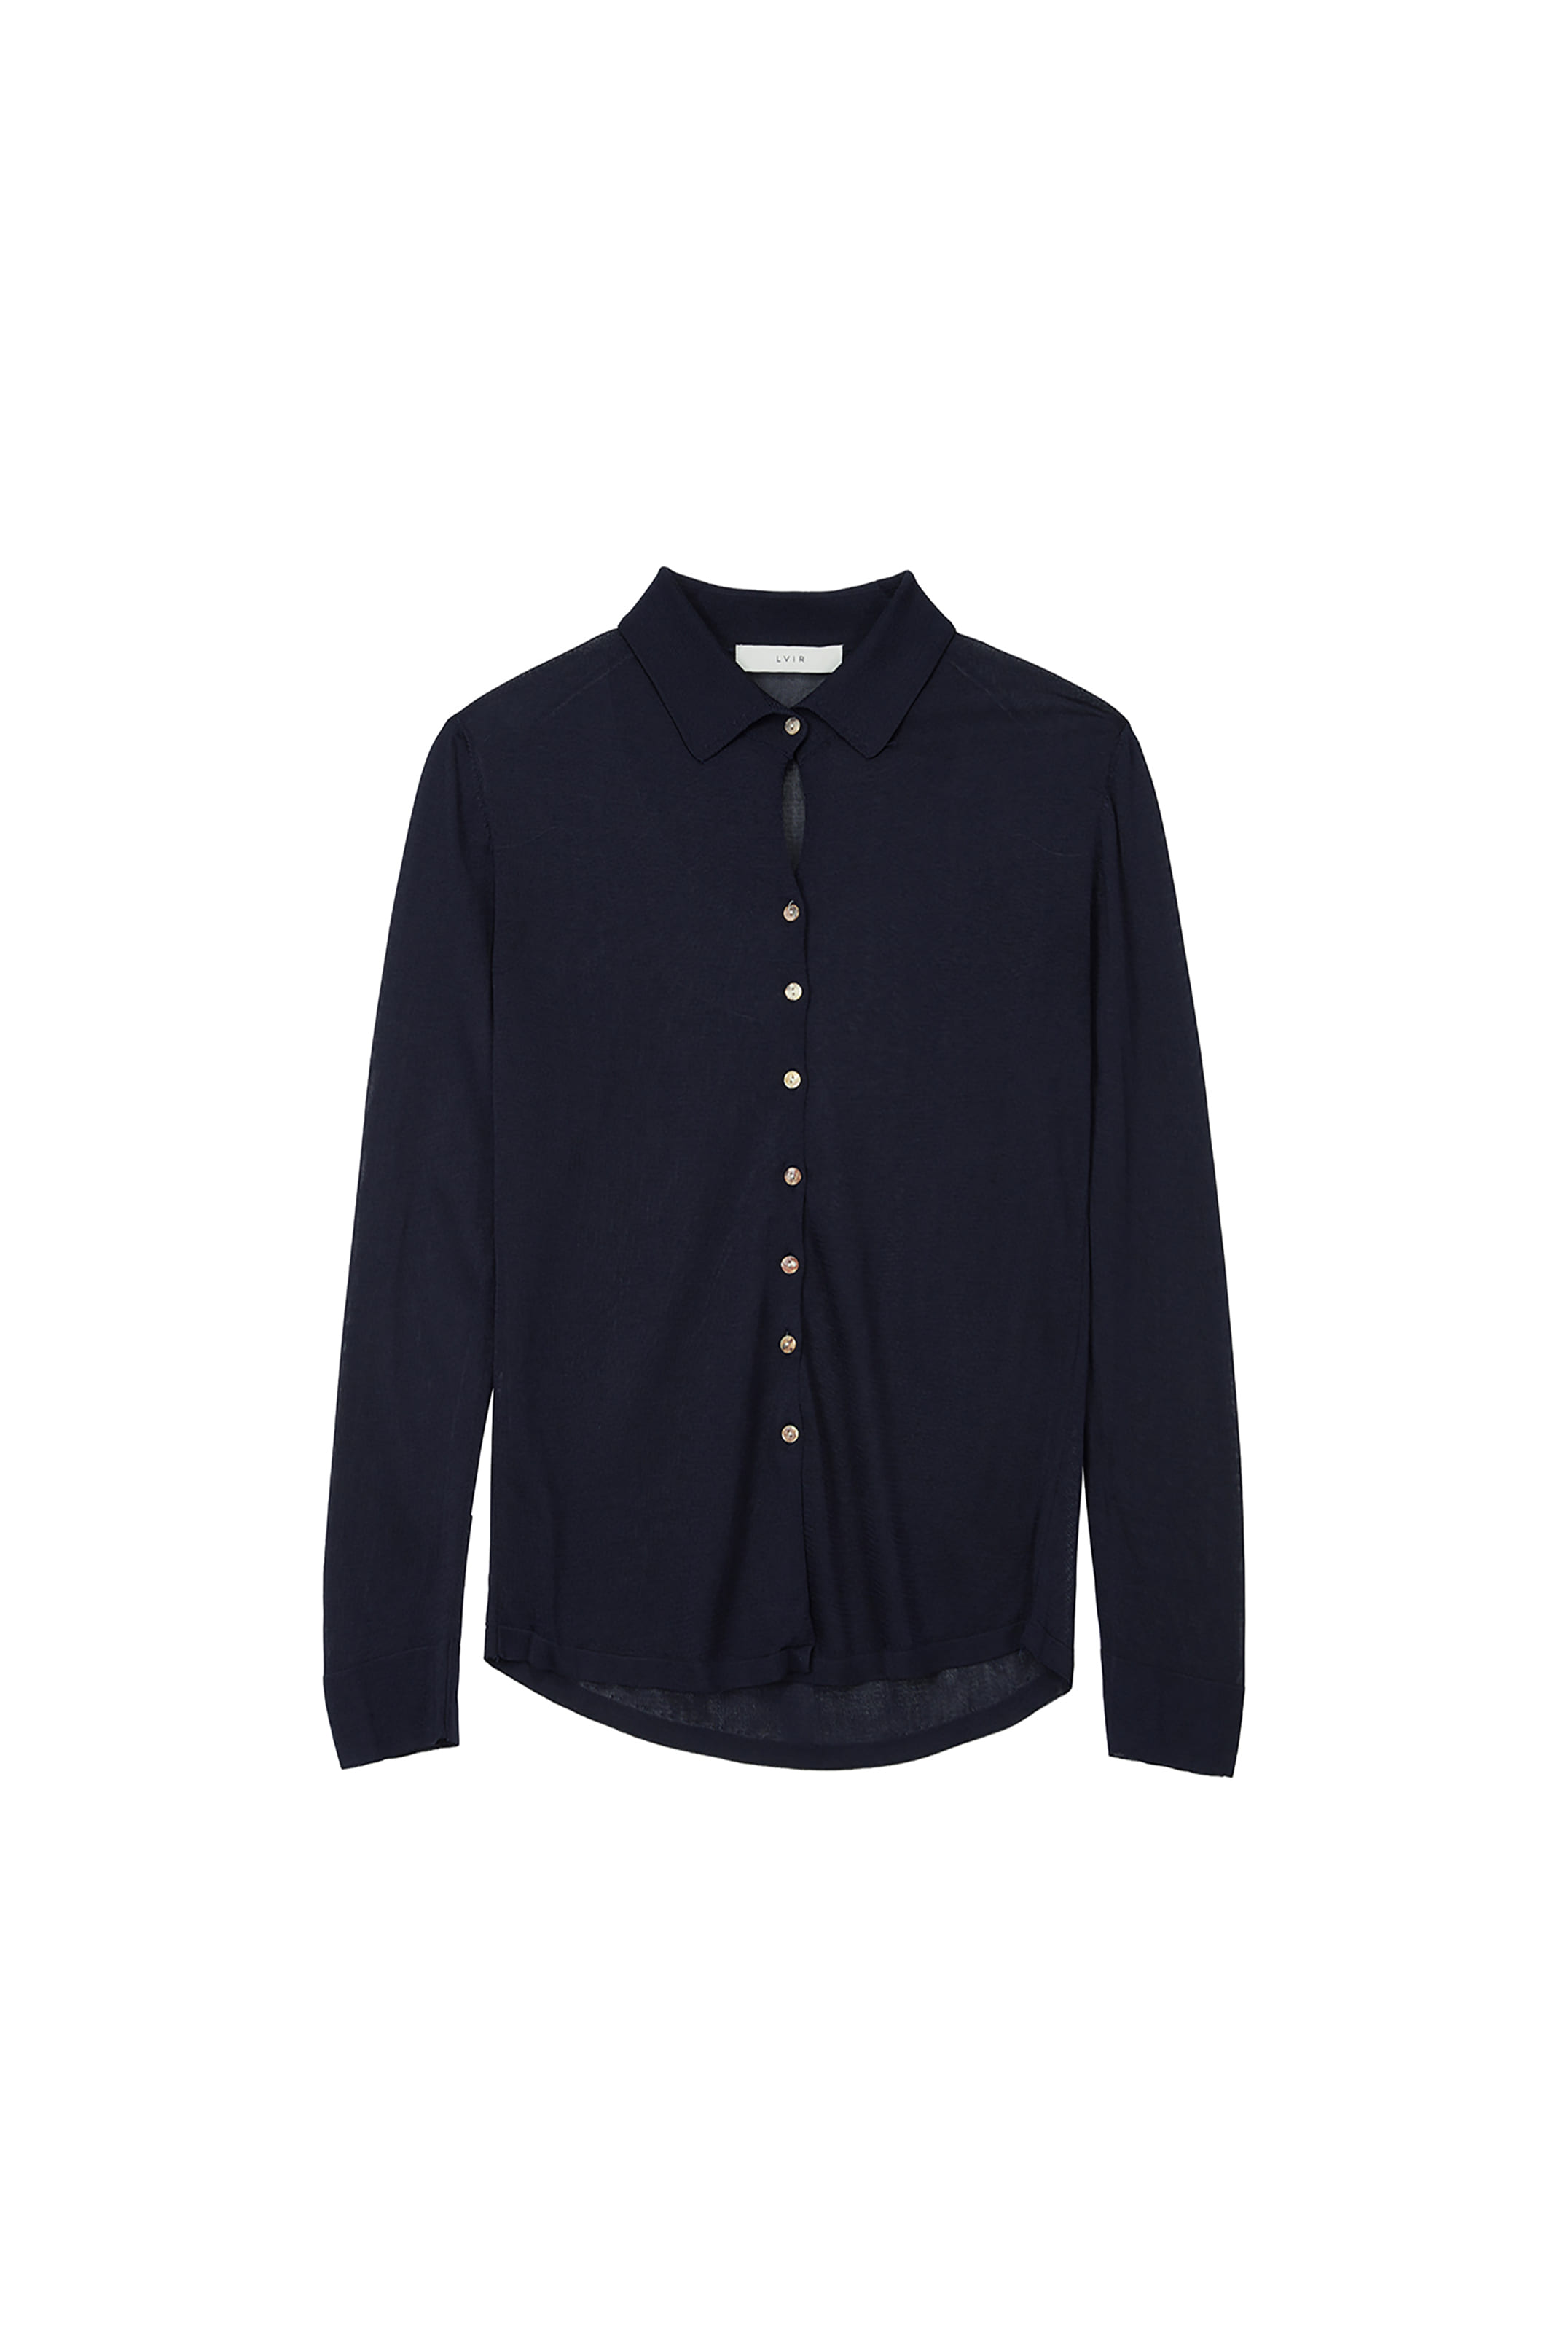 VISCOSE KNITED SHIRTS_NAVY